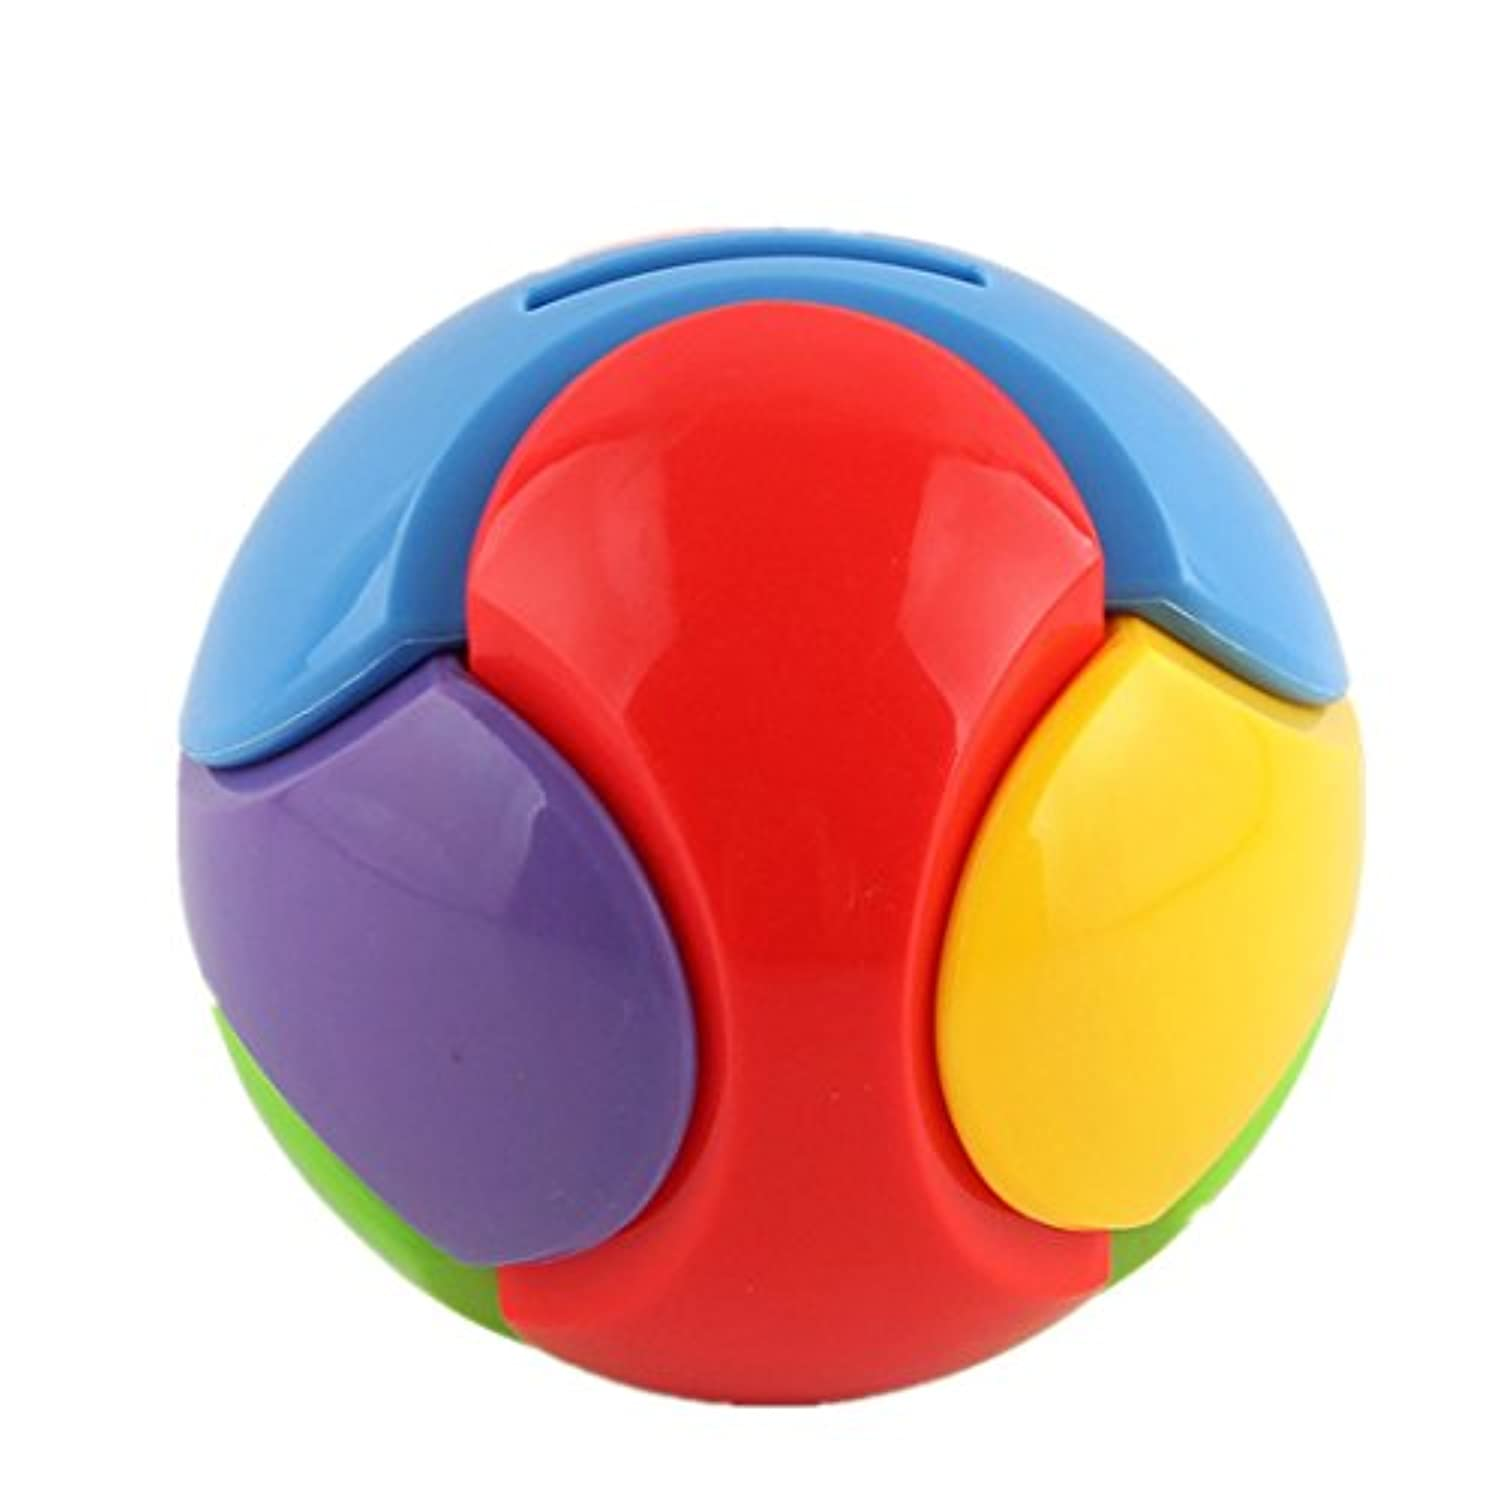 Baby Puzzles Toy Williant Early Development Toys Ball Puzzle Ball Toy Assembled Piggy Bank